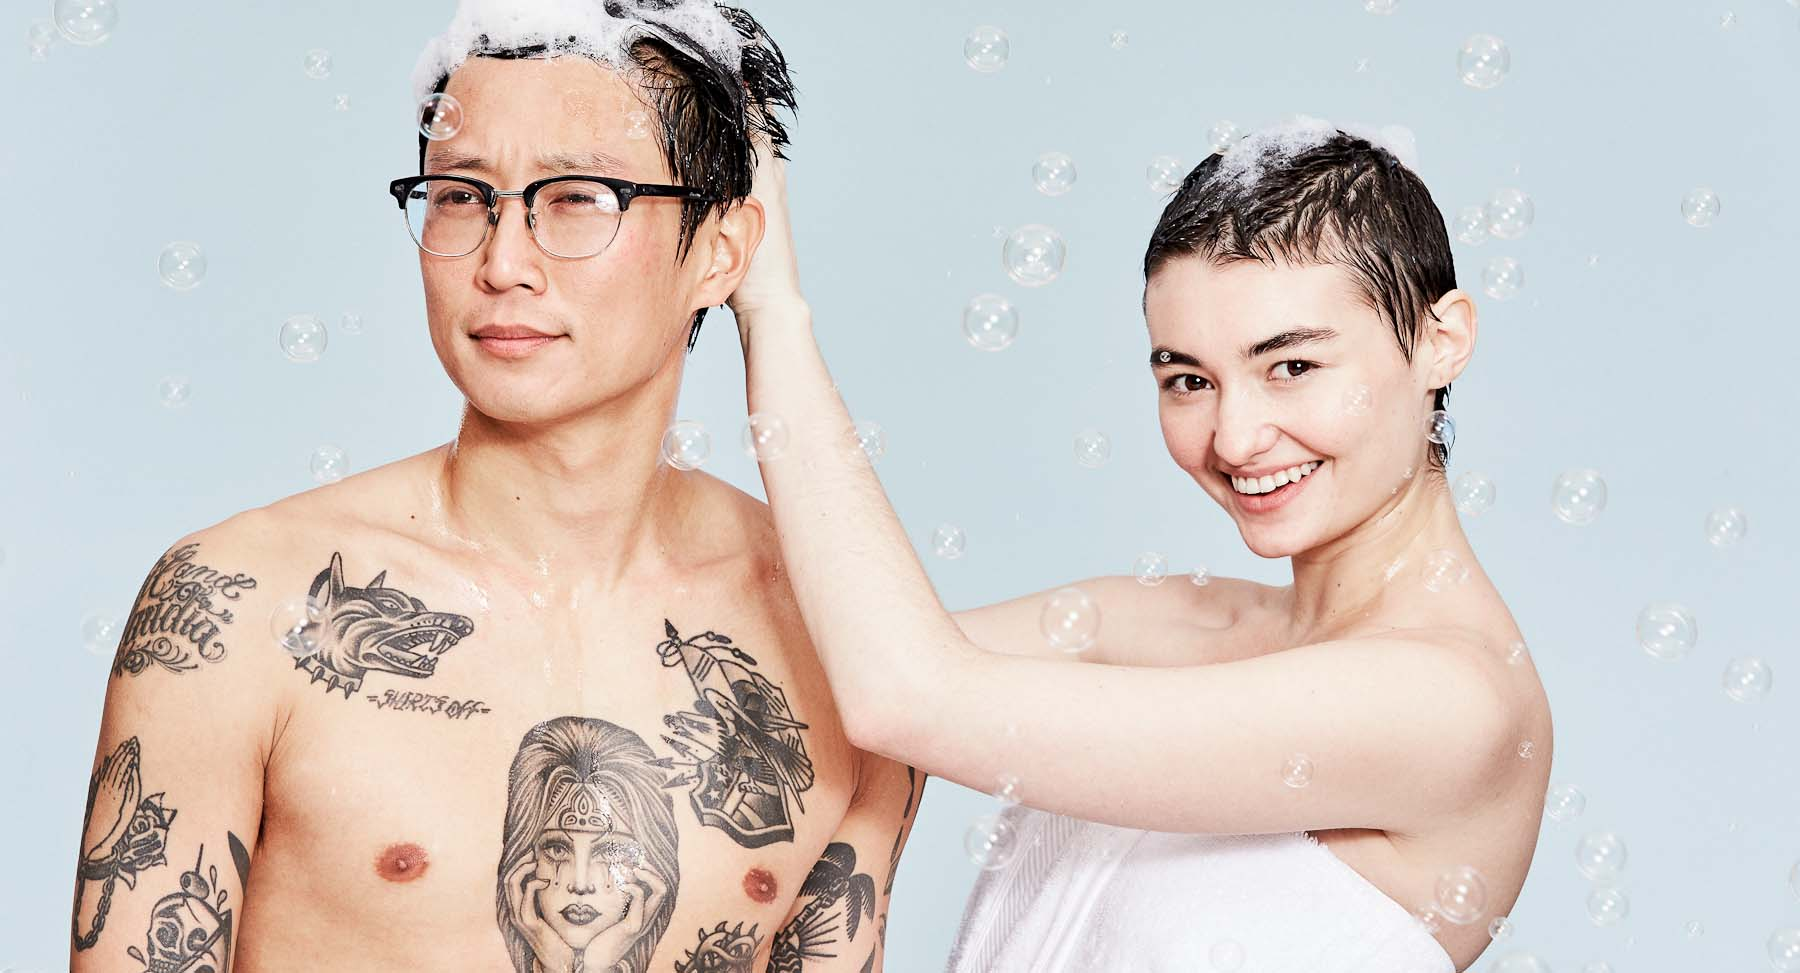 A Guide to Getting a Tattoo That Fits Your Personality and Lifestyle